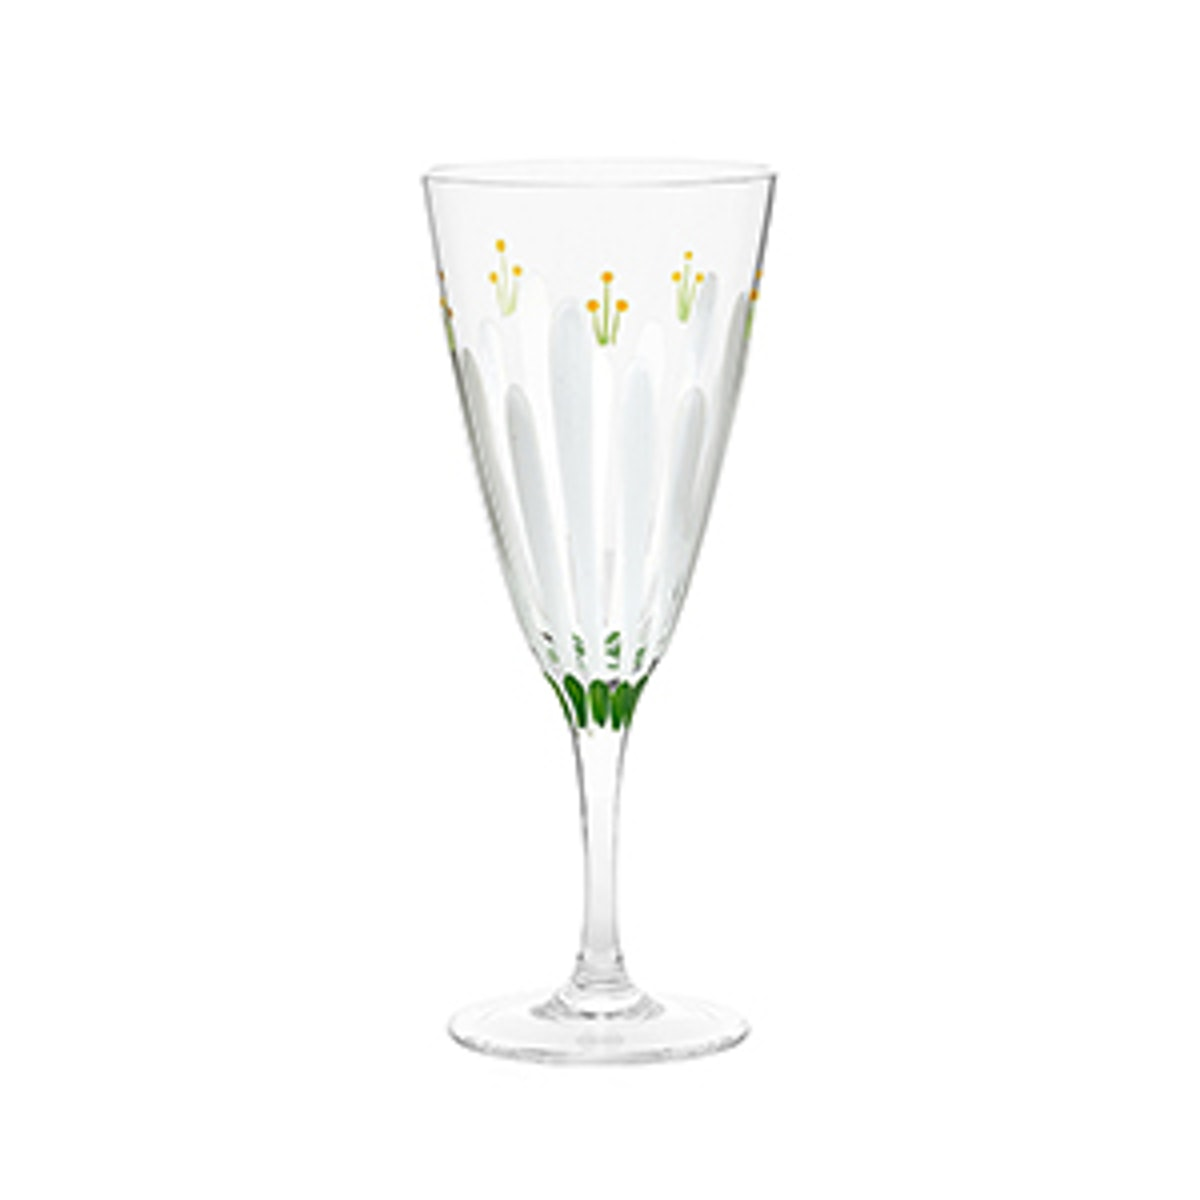 Spring Meadow Champage Flute (Set of 2)